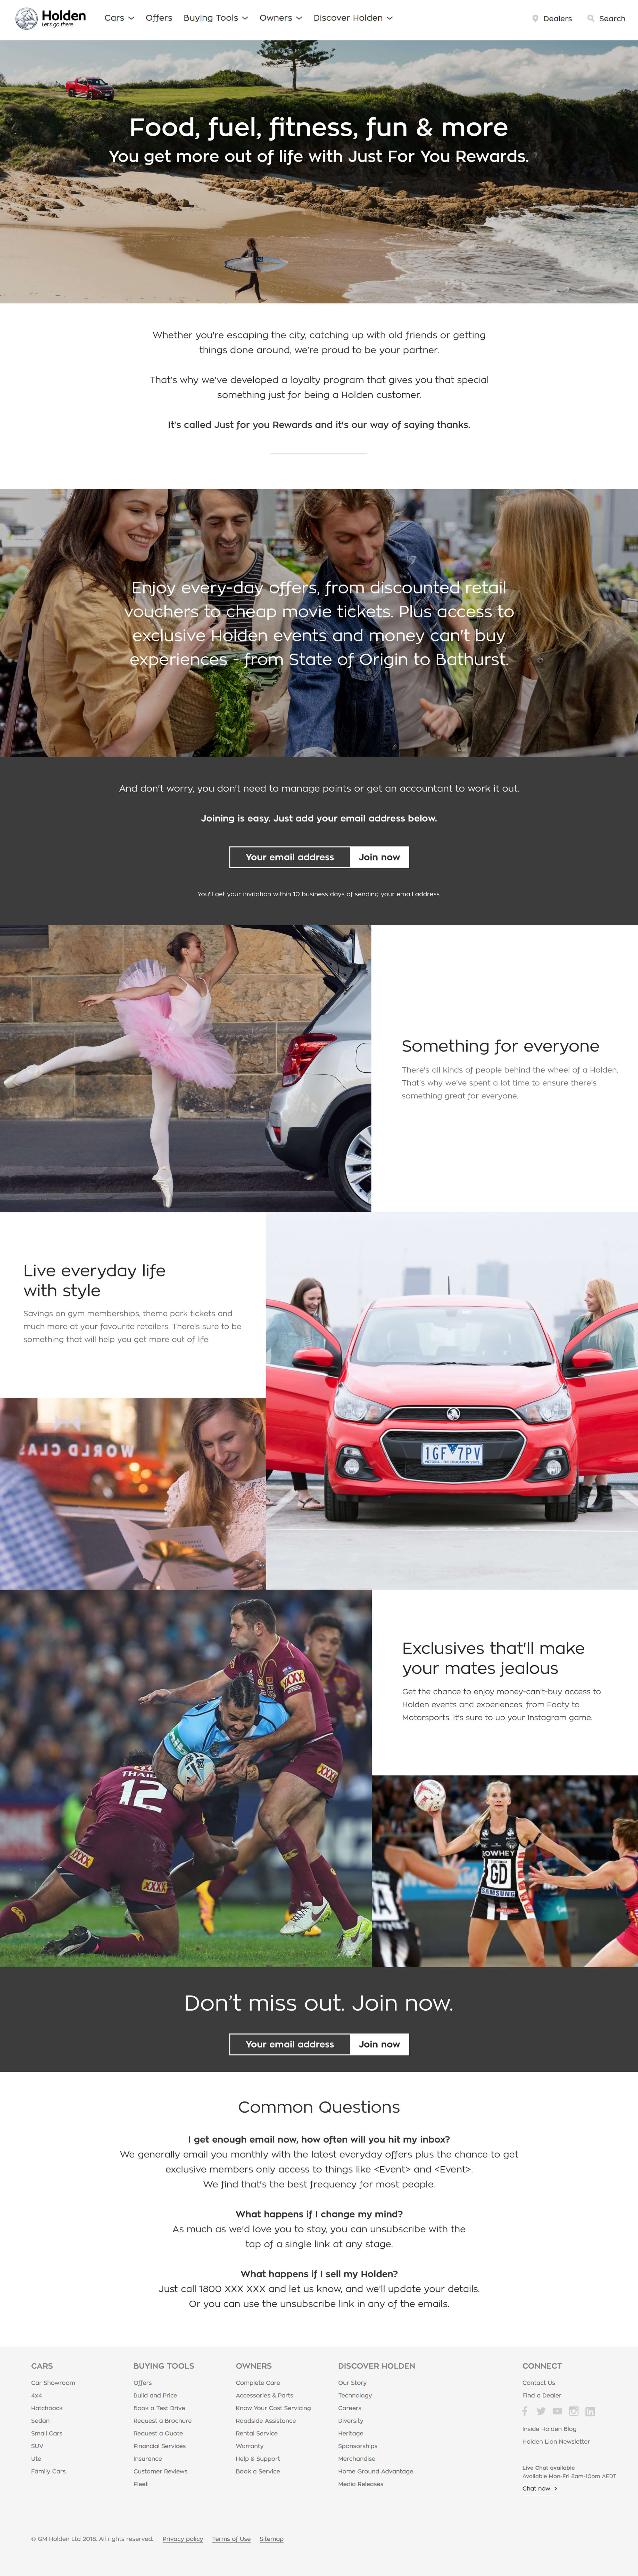 GM Holden: Just For You Rewards is a CRM Loyalty Program for GM Holden vehicle owners. I was responsible for creative direction on this project that I worked on with Epsilon. I did lots of the concept development, copywriting, art direction, and even video editing.